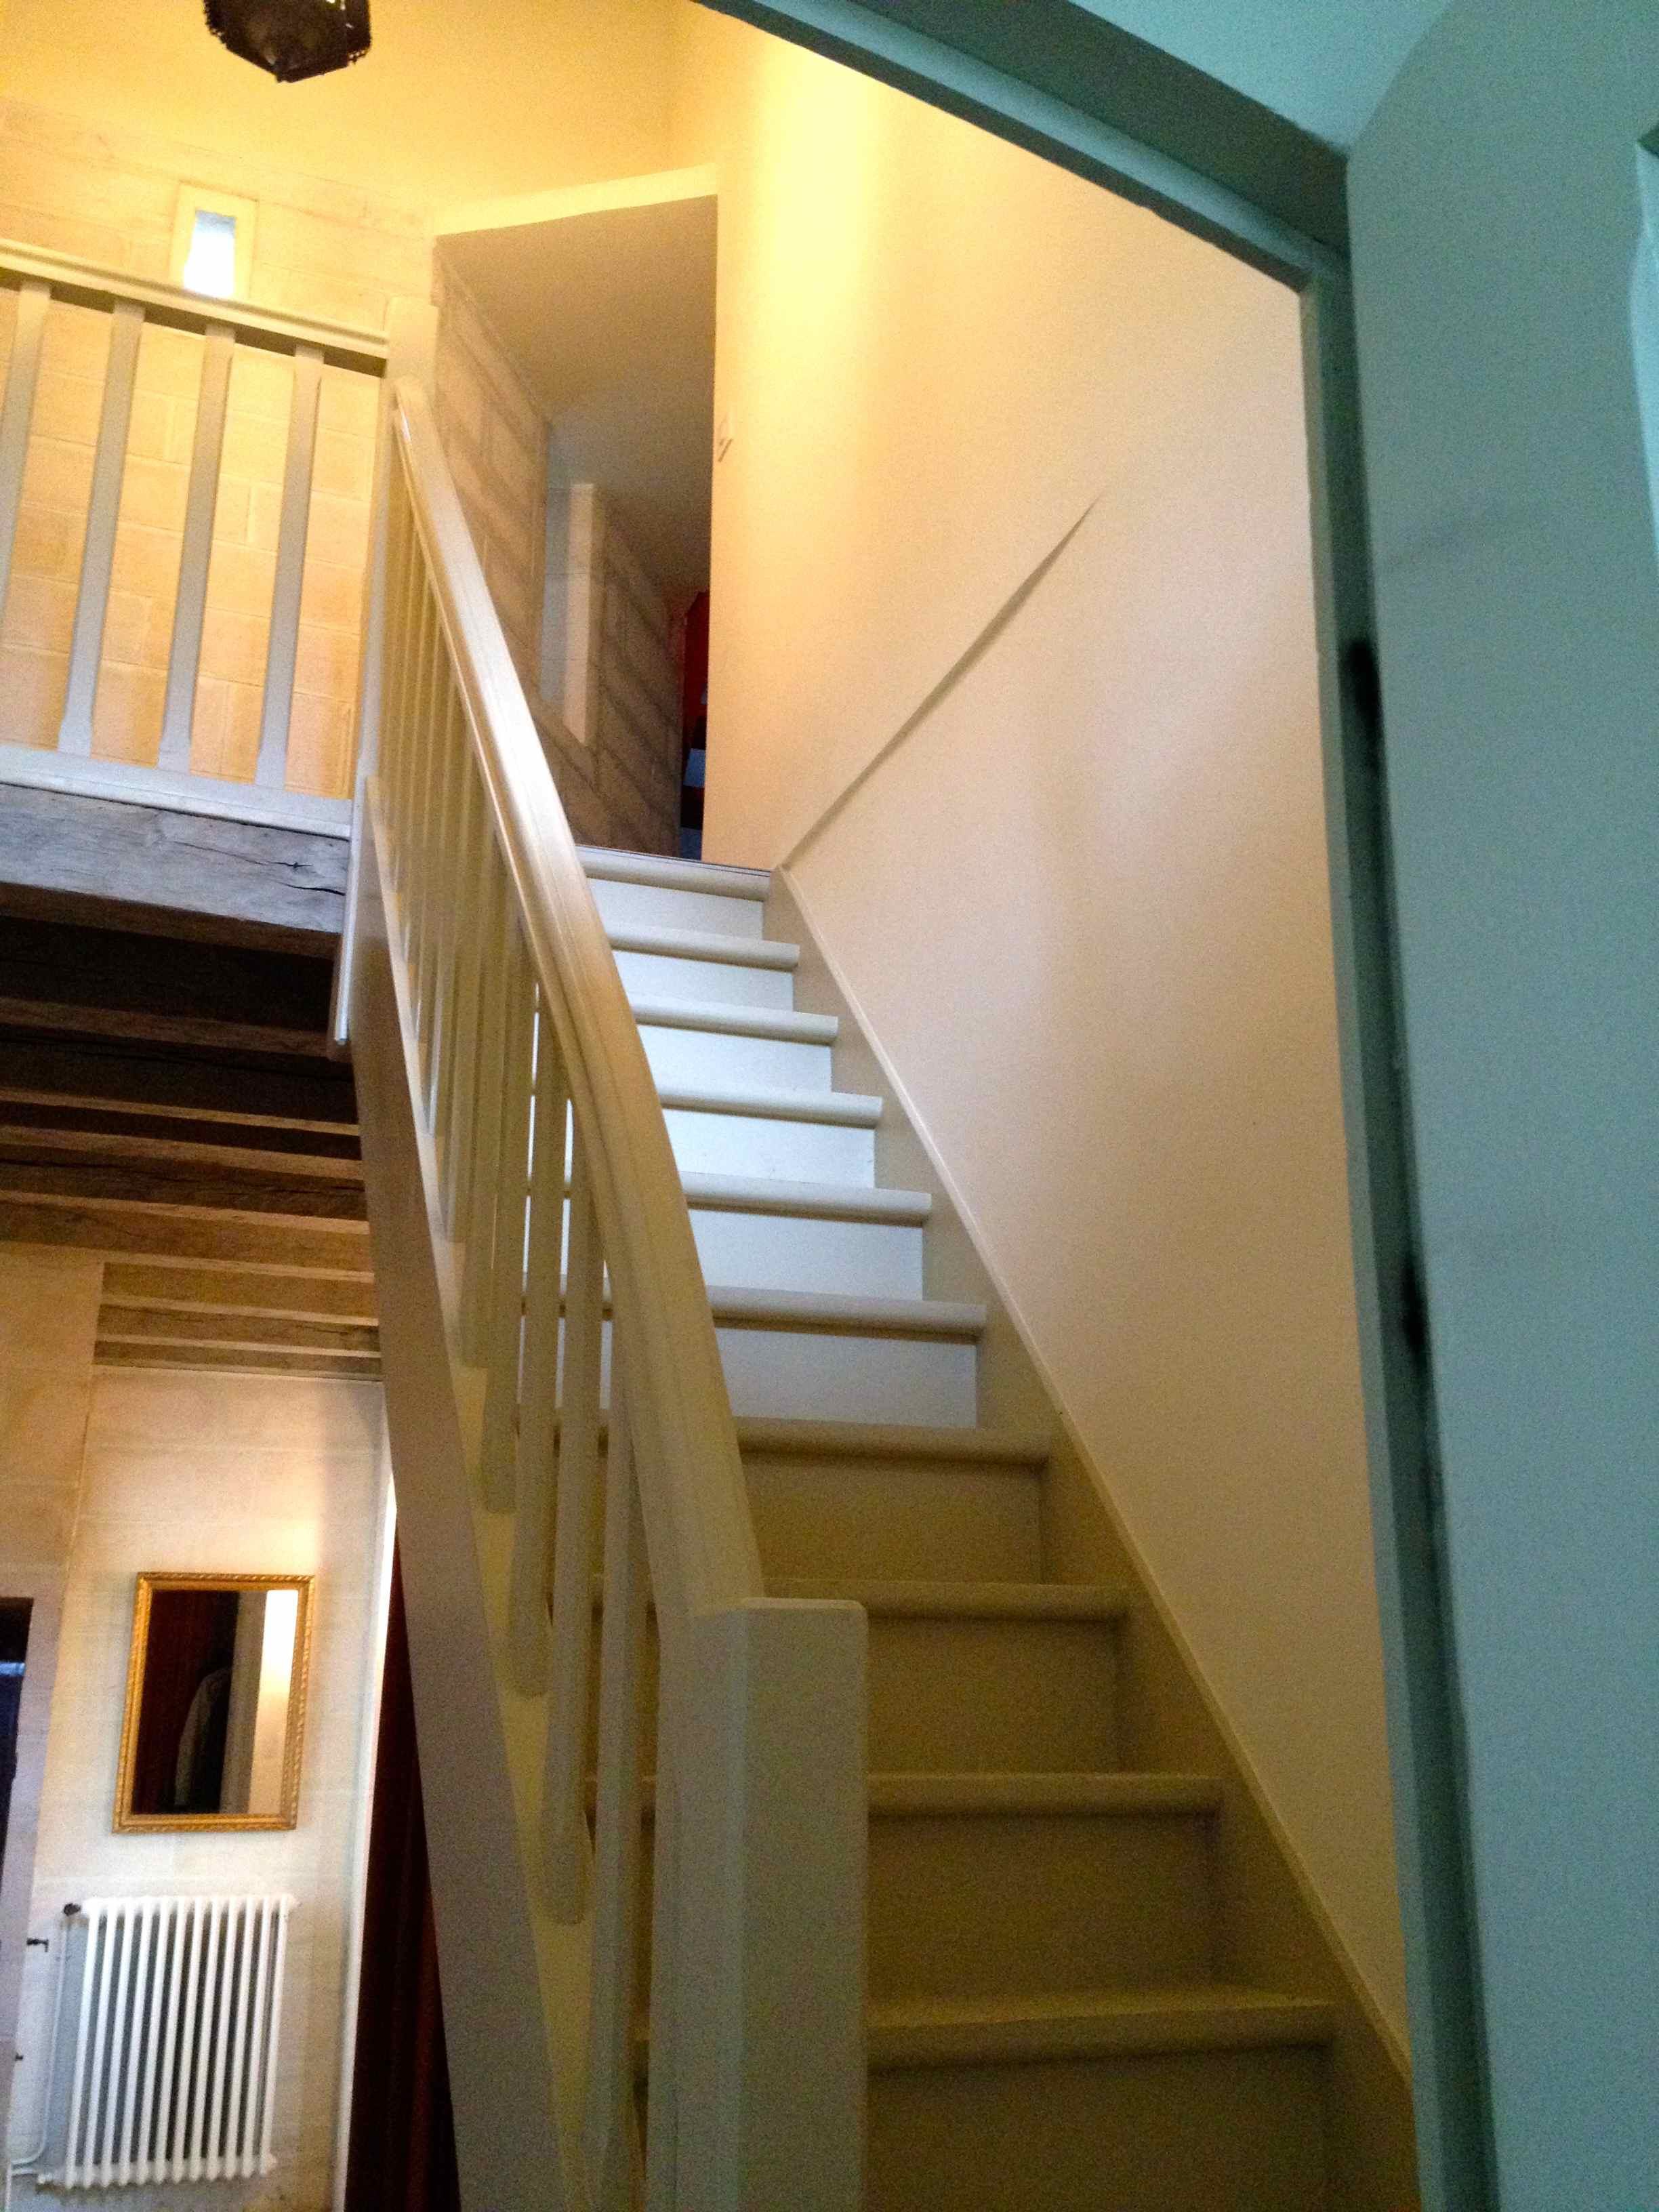 12 Staircase up to tower.jpg